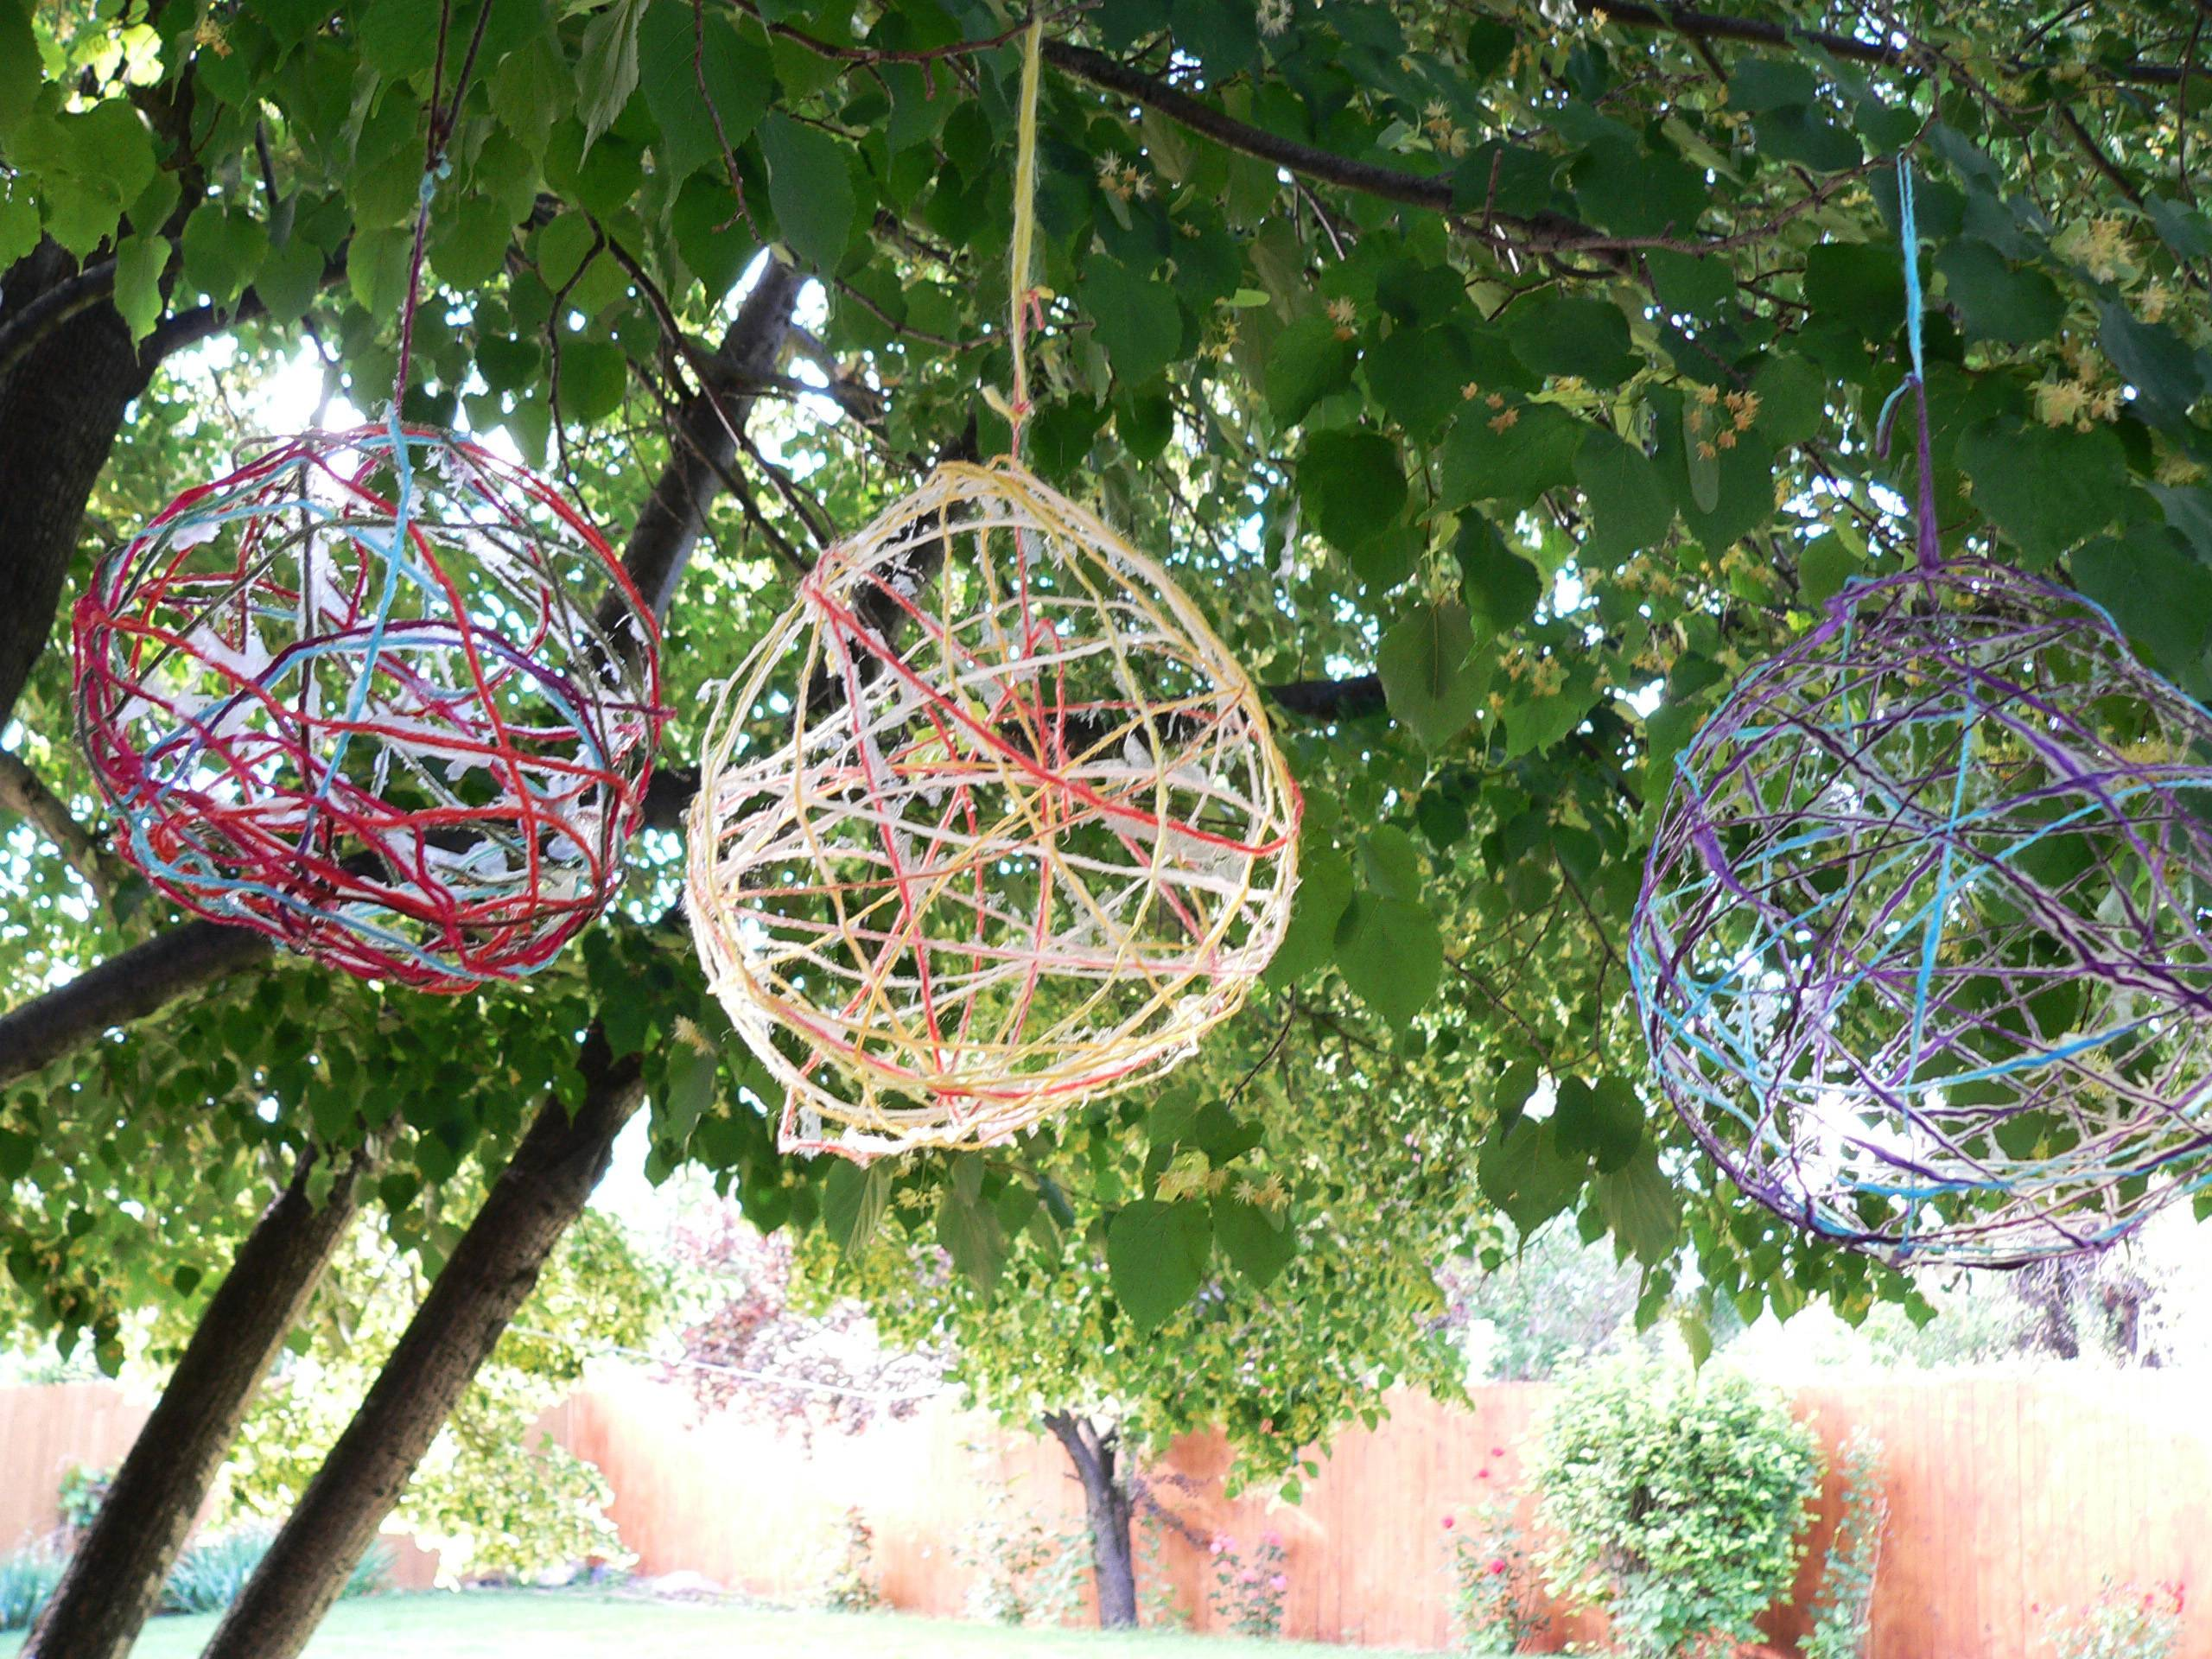 Colorful orbs -- made from glue-soaked yarn wrapped around balloons -- hang in a tree in Arvada, Colo. This and other crafts were featured at a teen crafting party.